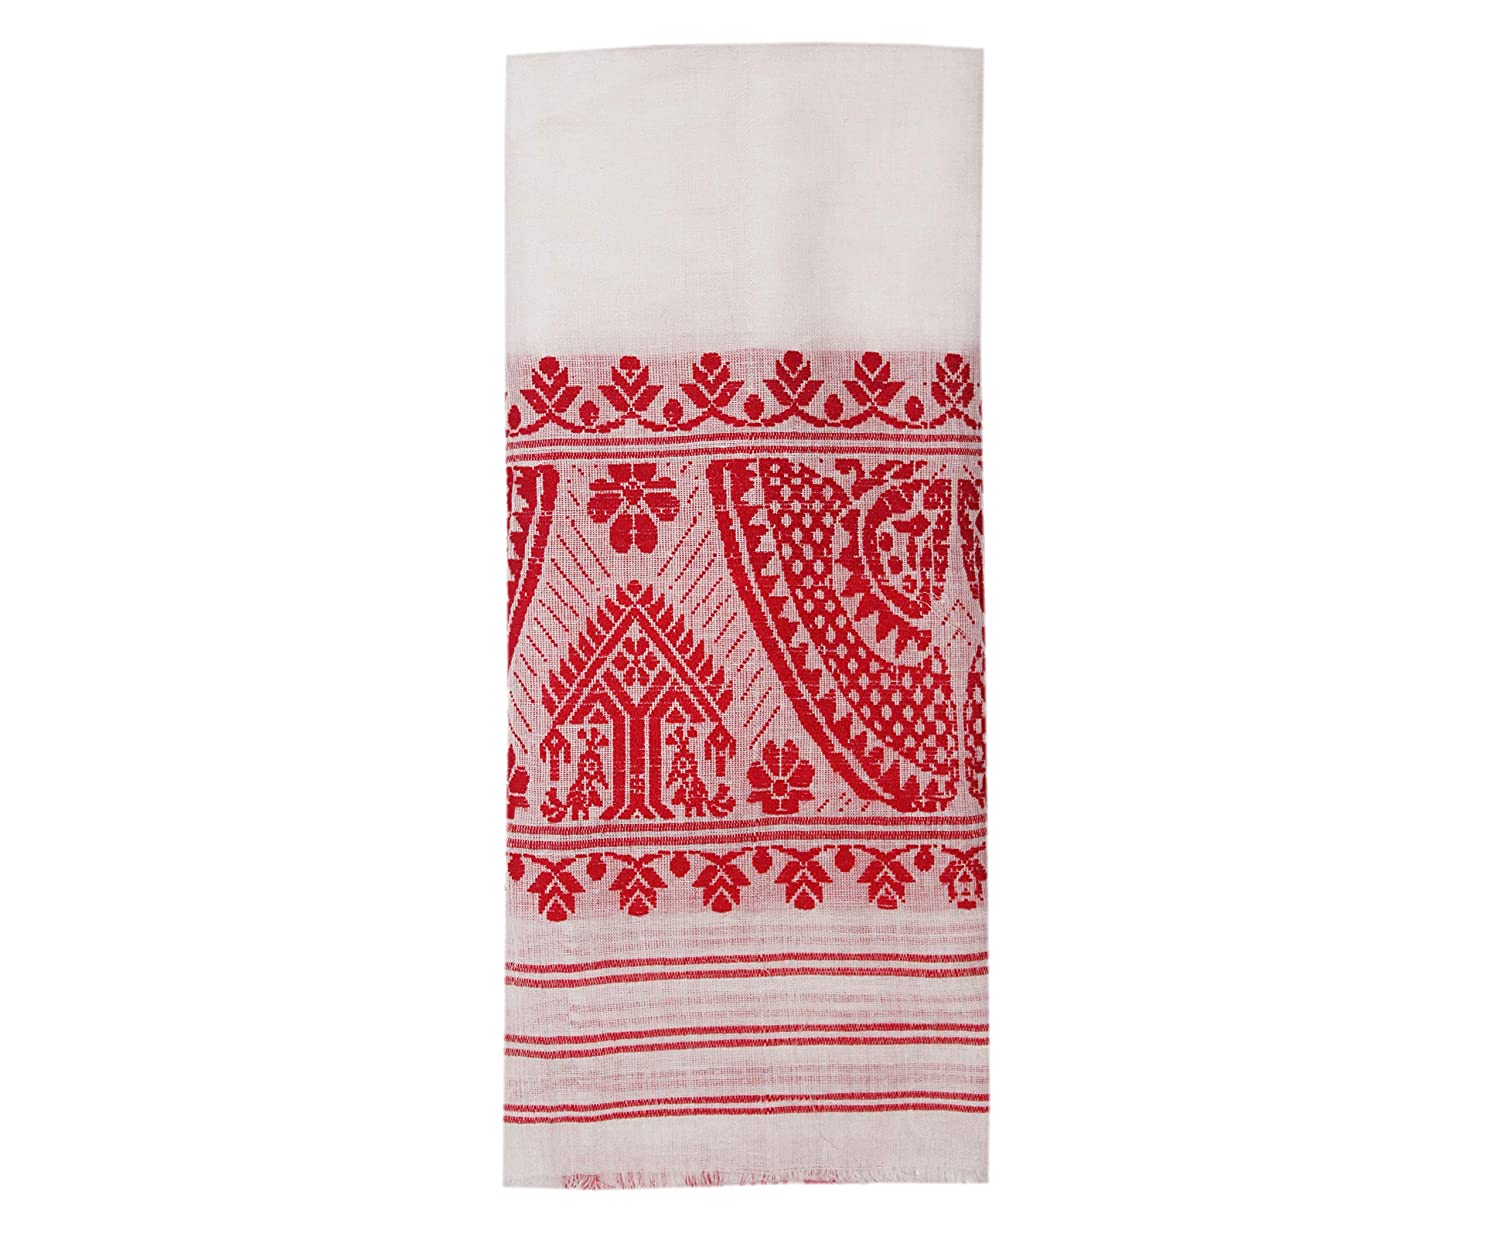 "Epic Store, Assamese Traditiona Gamosa 50"" * 25"" Pure Handloom Product Cotton Gamosa, Pack of 1"